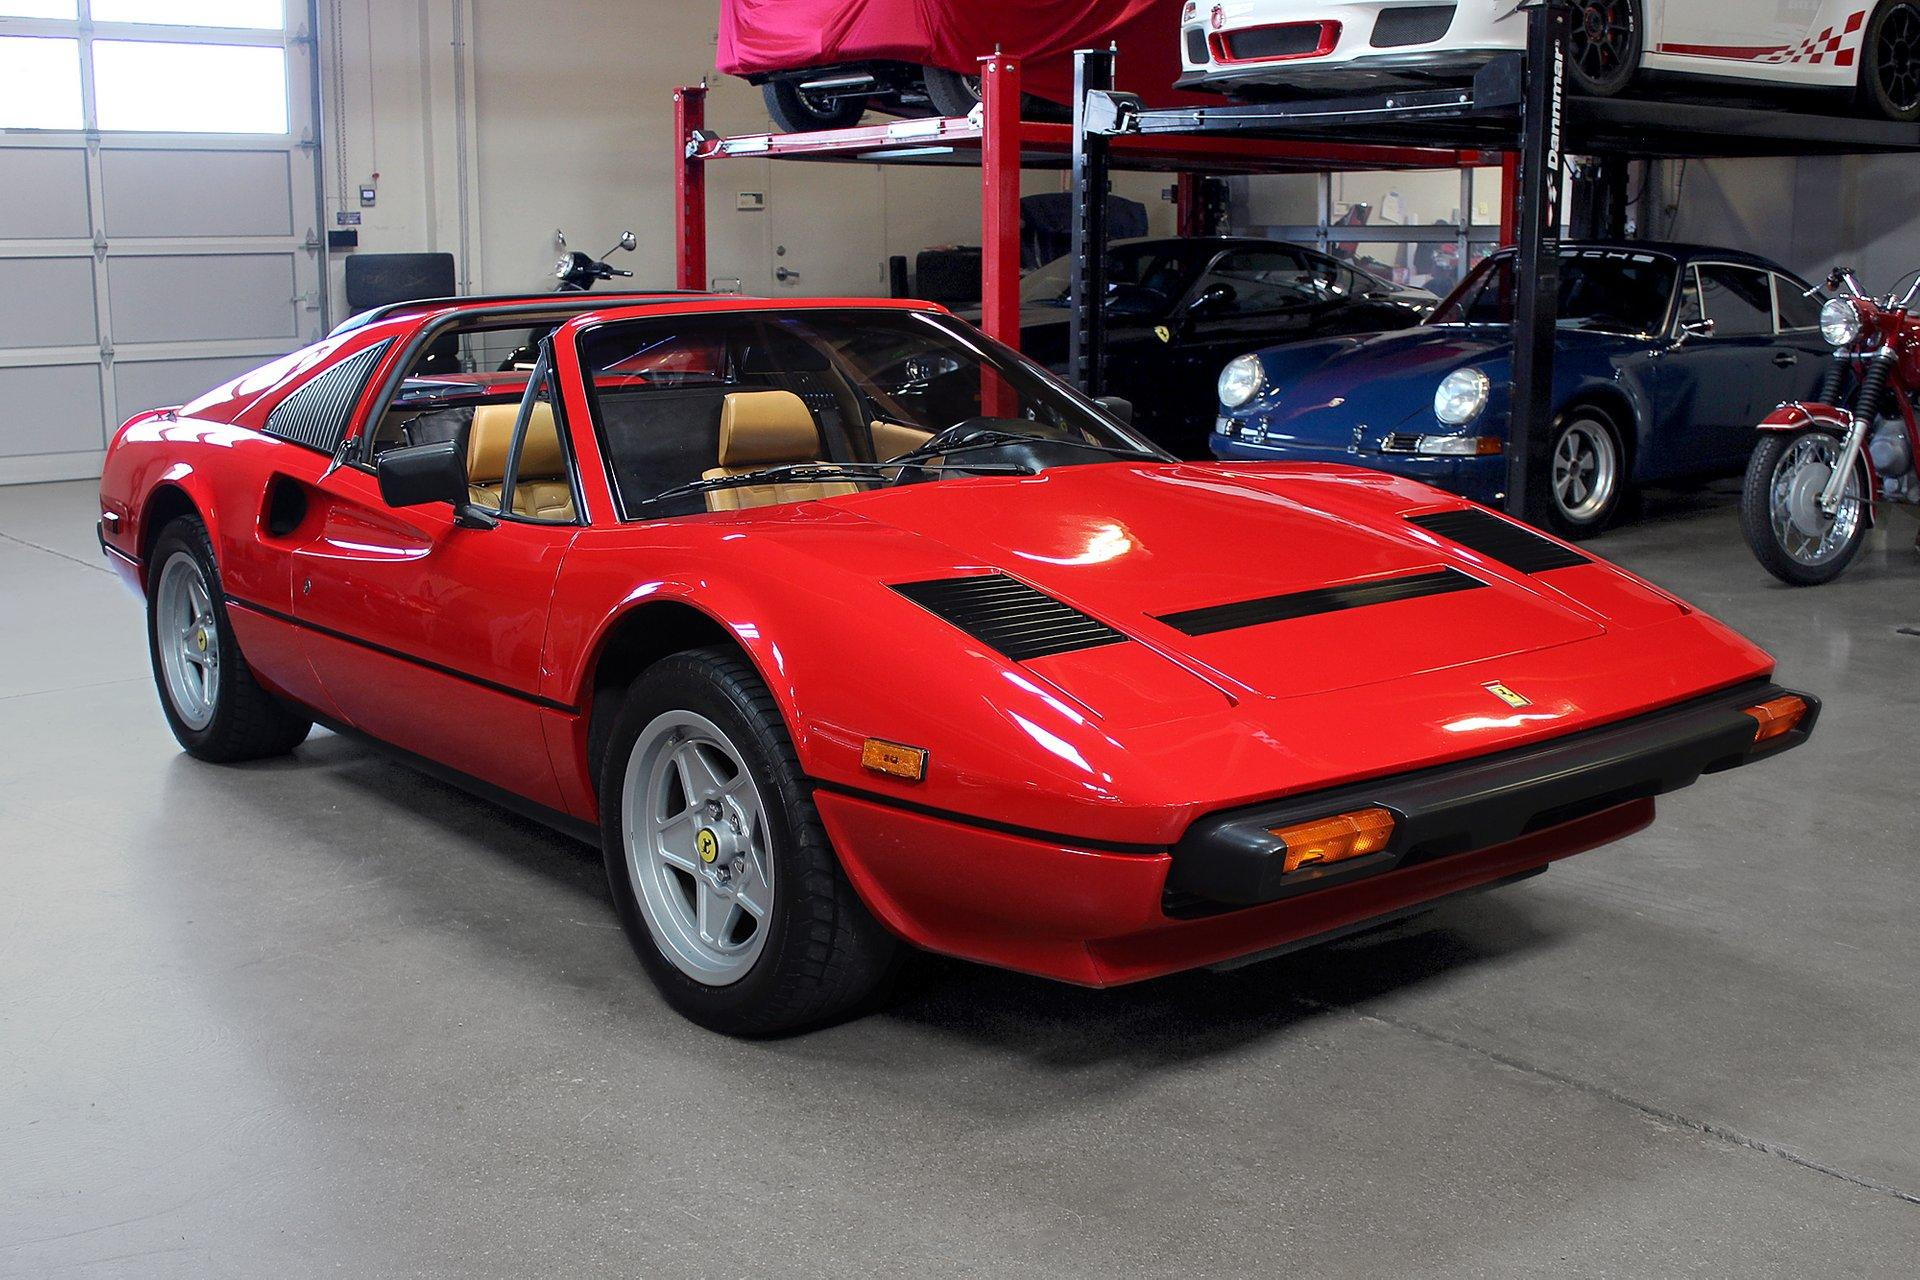 Used 1985 Ferrari 308 Gts For Sale Special Pricing San Francisco Sports Cars Stock C19033